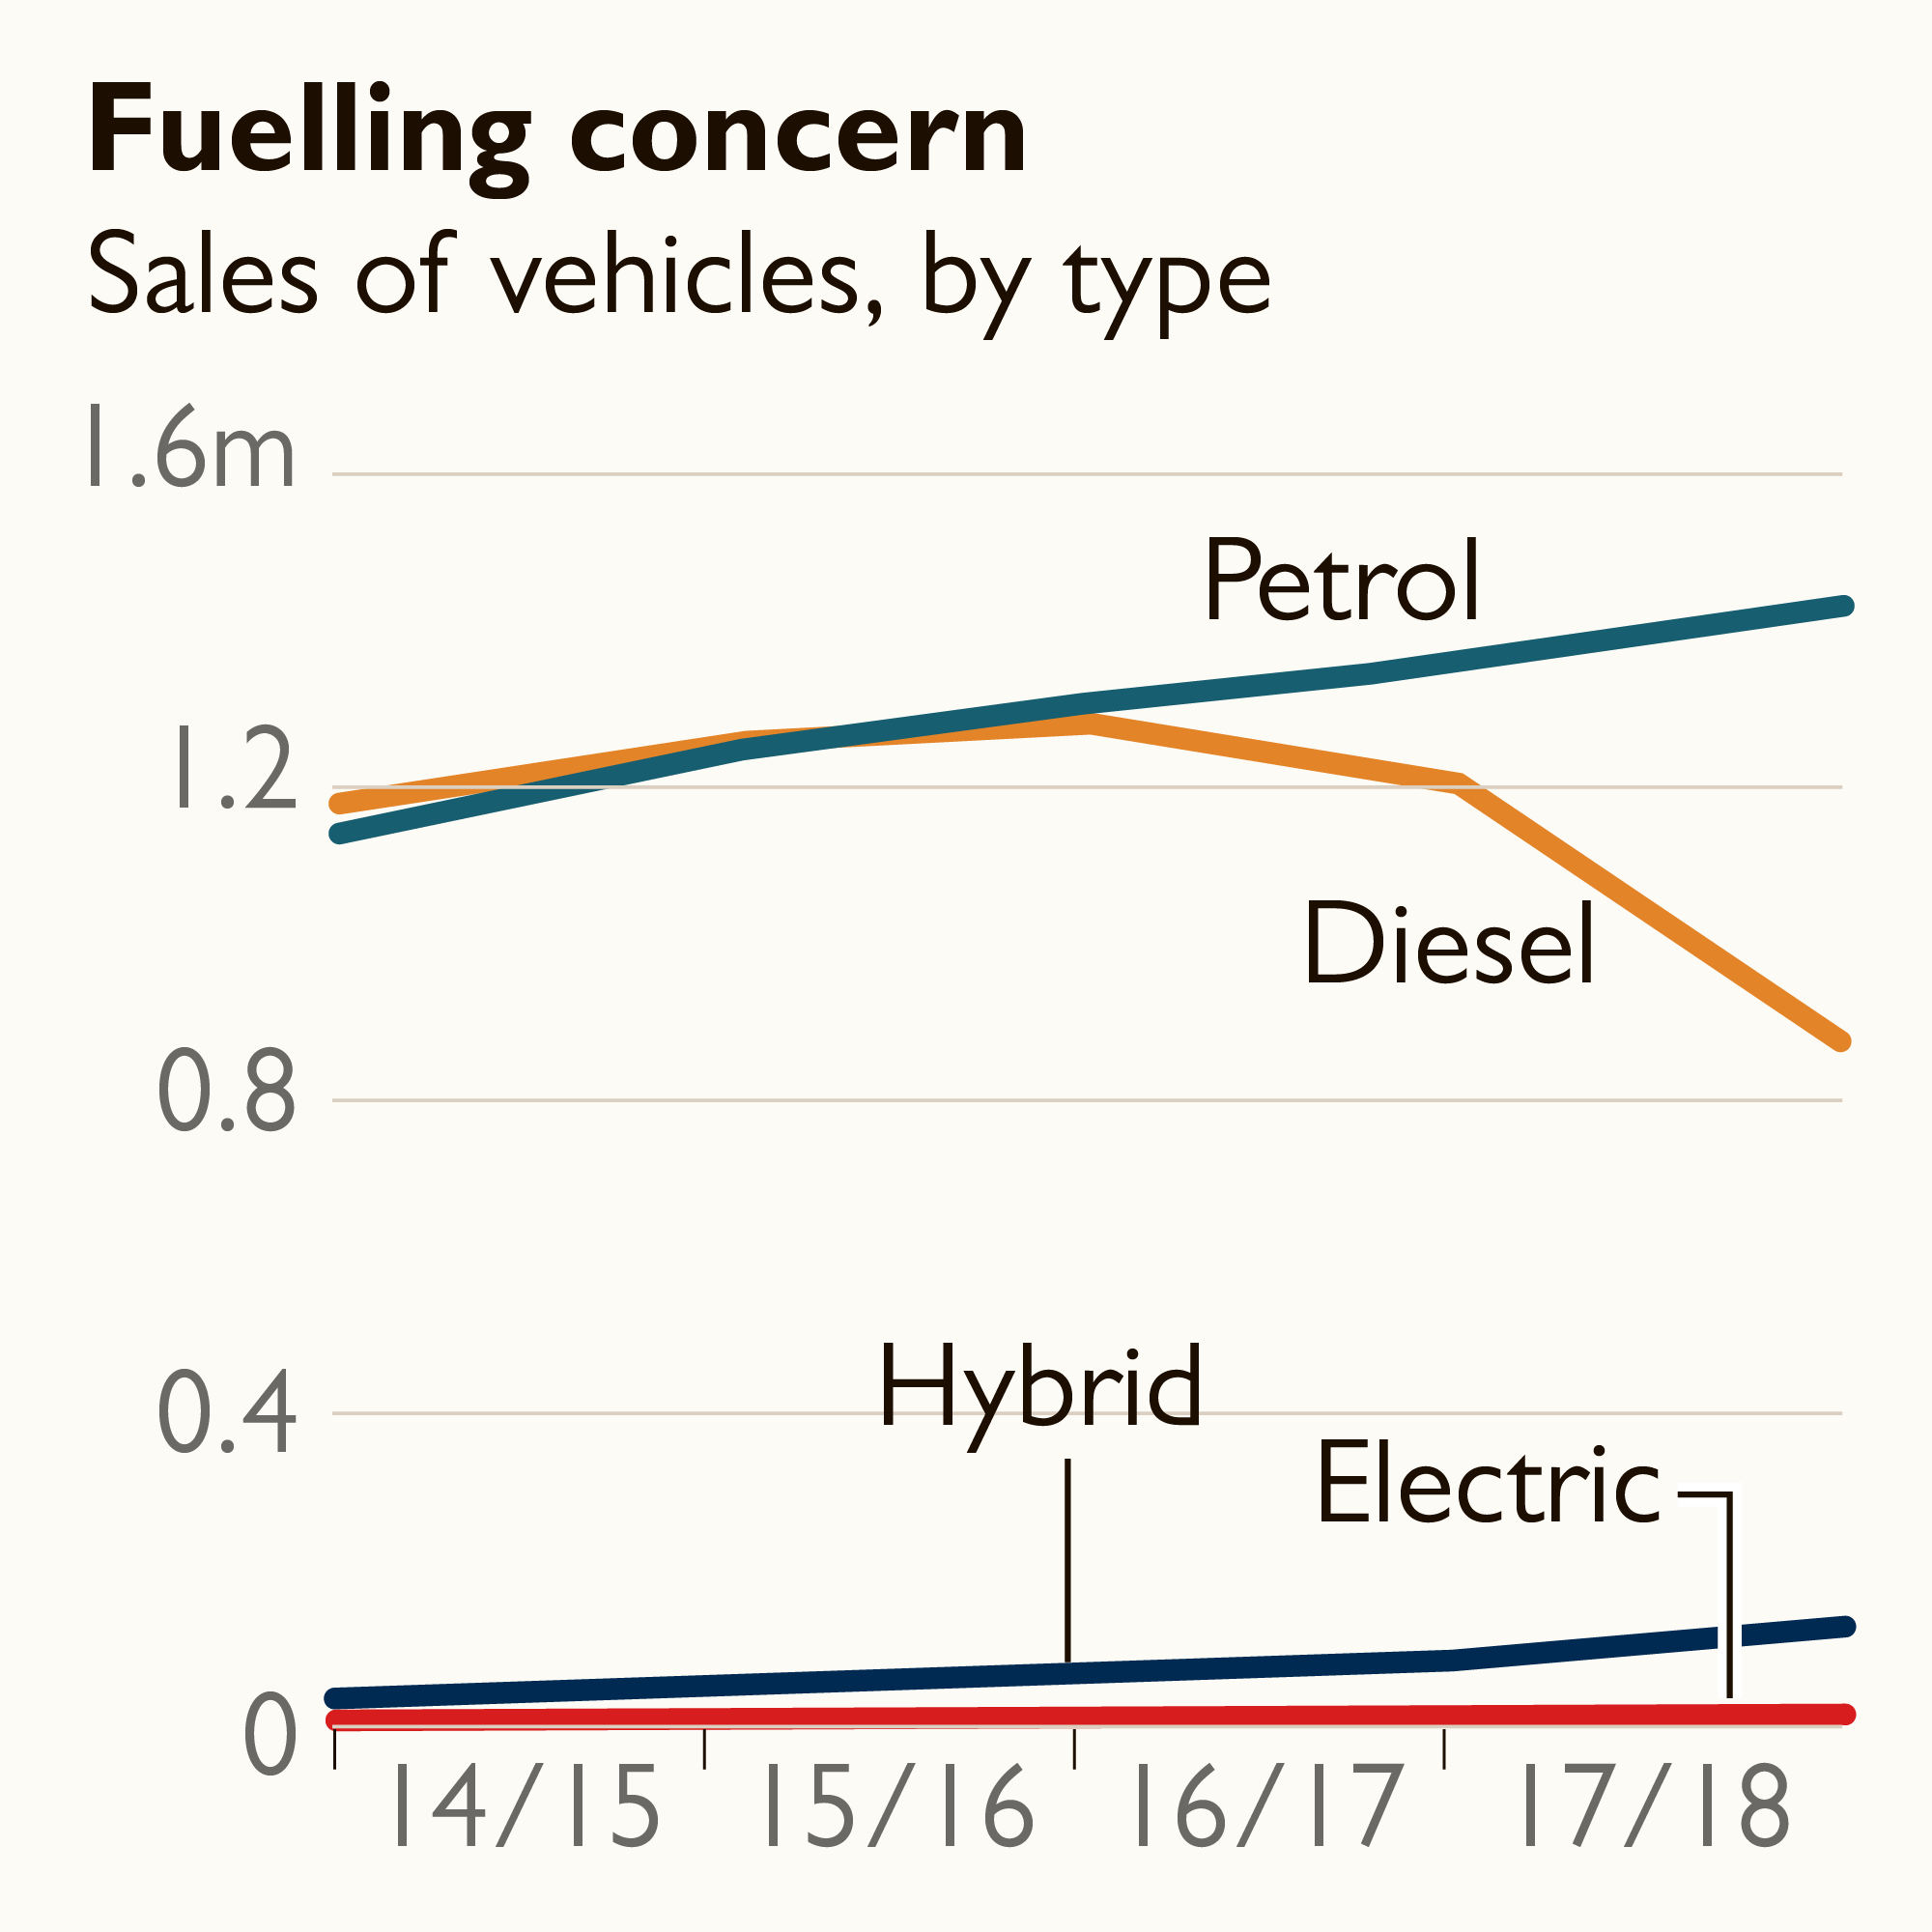 hight resolution of figures show that sales of electric cars those with no exhaust emissions increased by 7 per cent in 2017 18 compared with a year earlier with 878 more